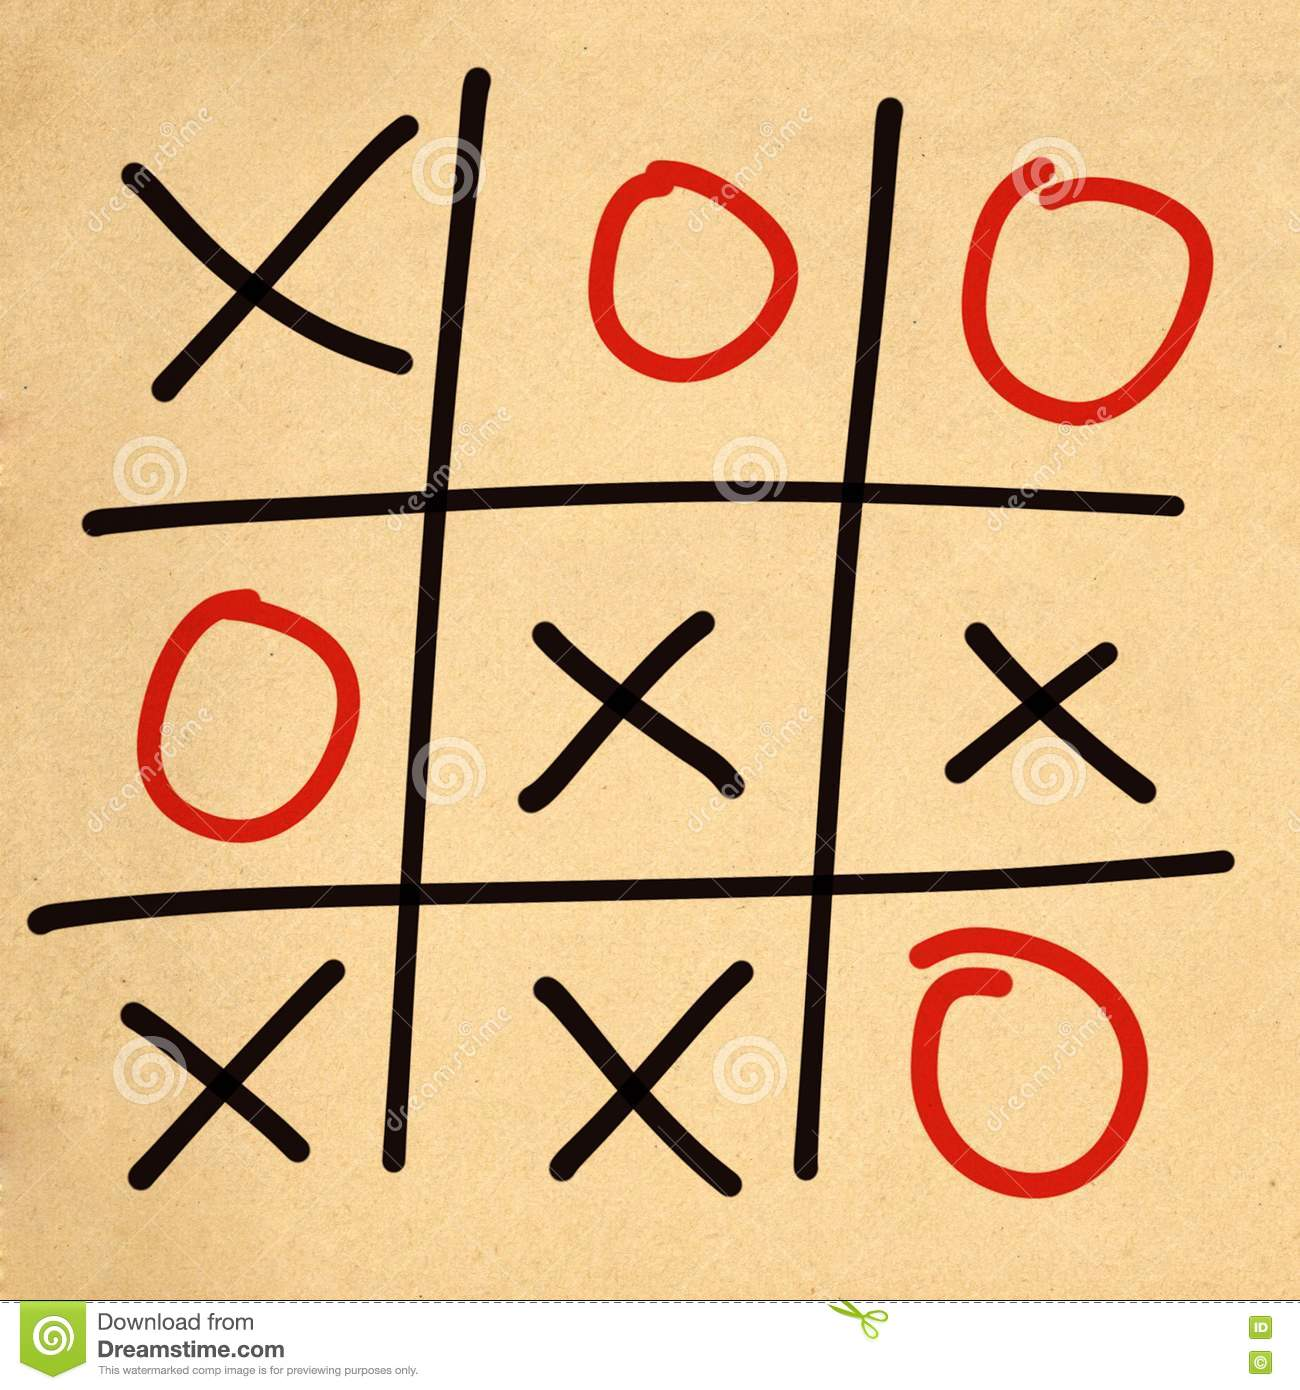 Illustration Tic Tac Toe XO Game Stock Illustration - Image: 75695126